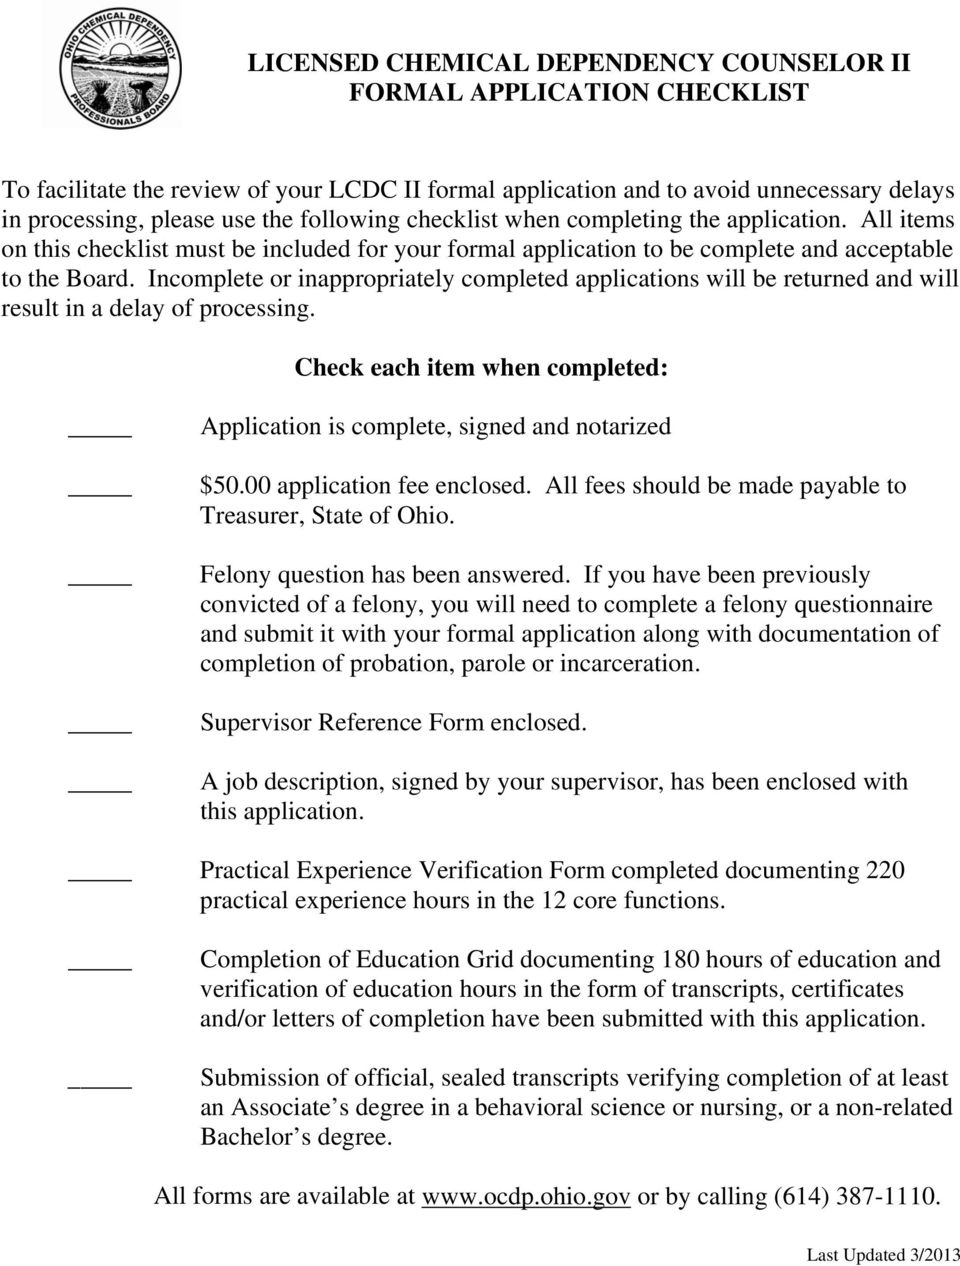 LICENSED CHEMICAL DEPENDENCY COUNSELOR II FORMAL APPLICATION - PDF